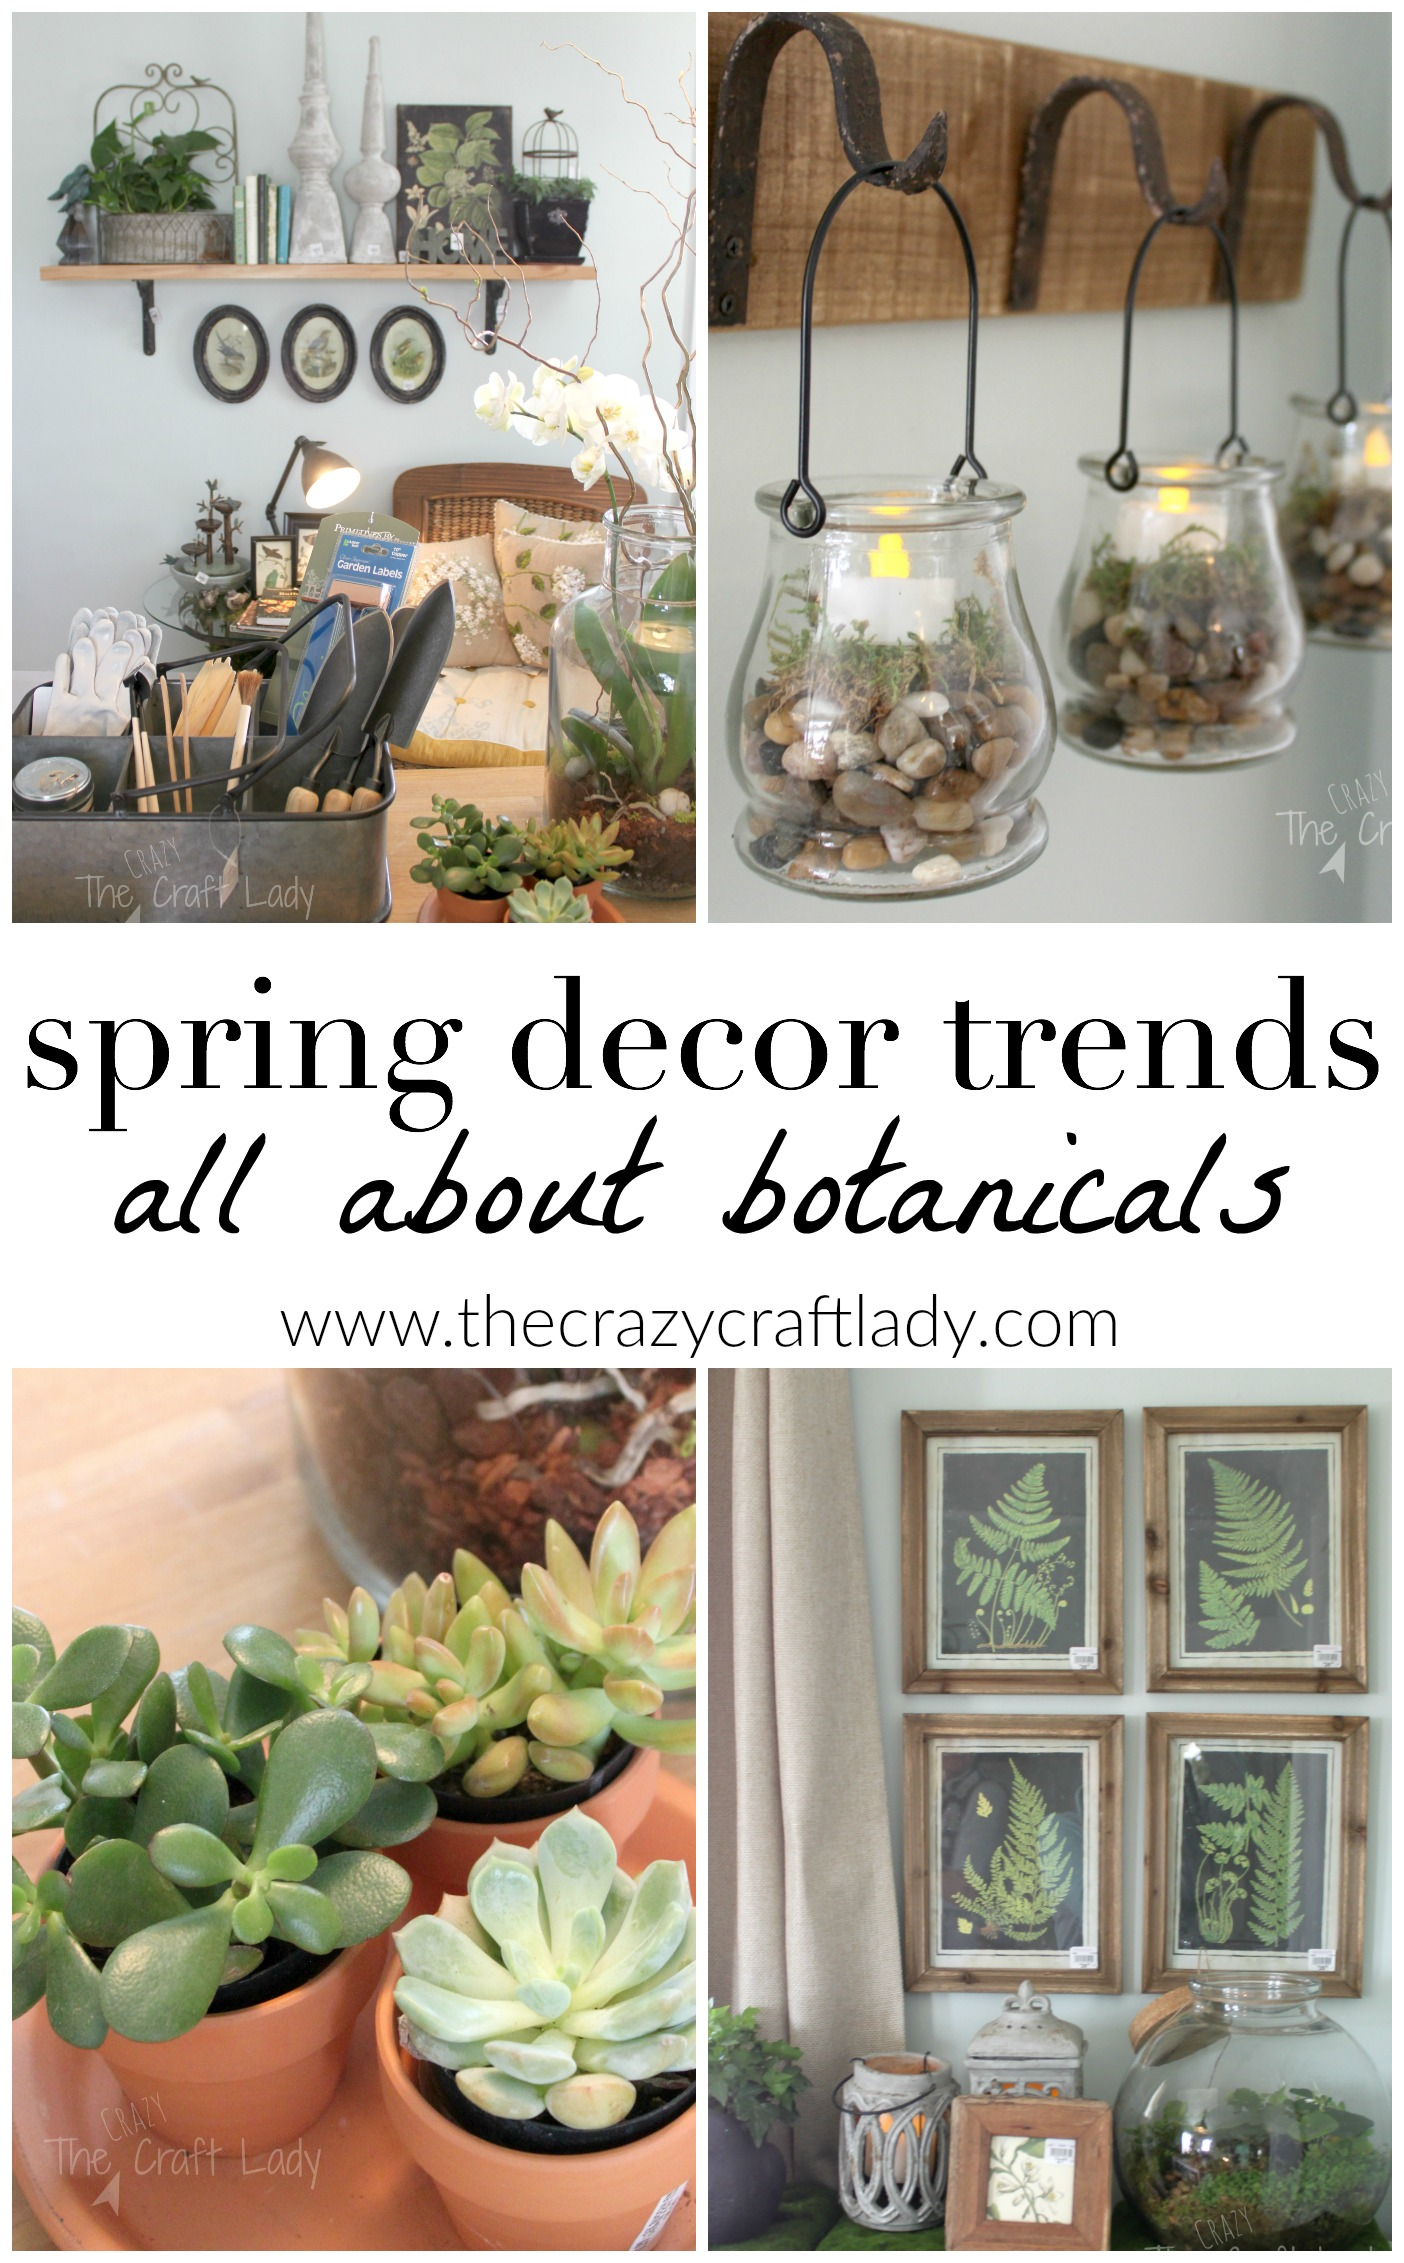 Diy Spring Decor: My Favorite Spring Decor Trends